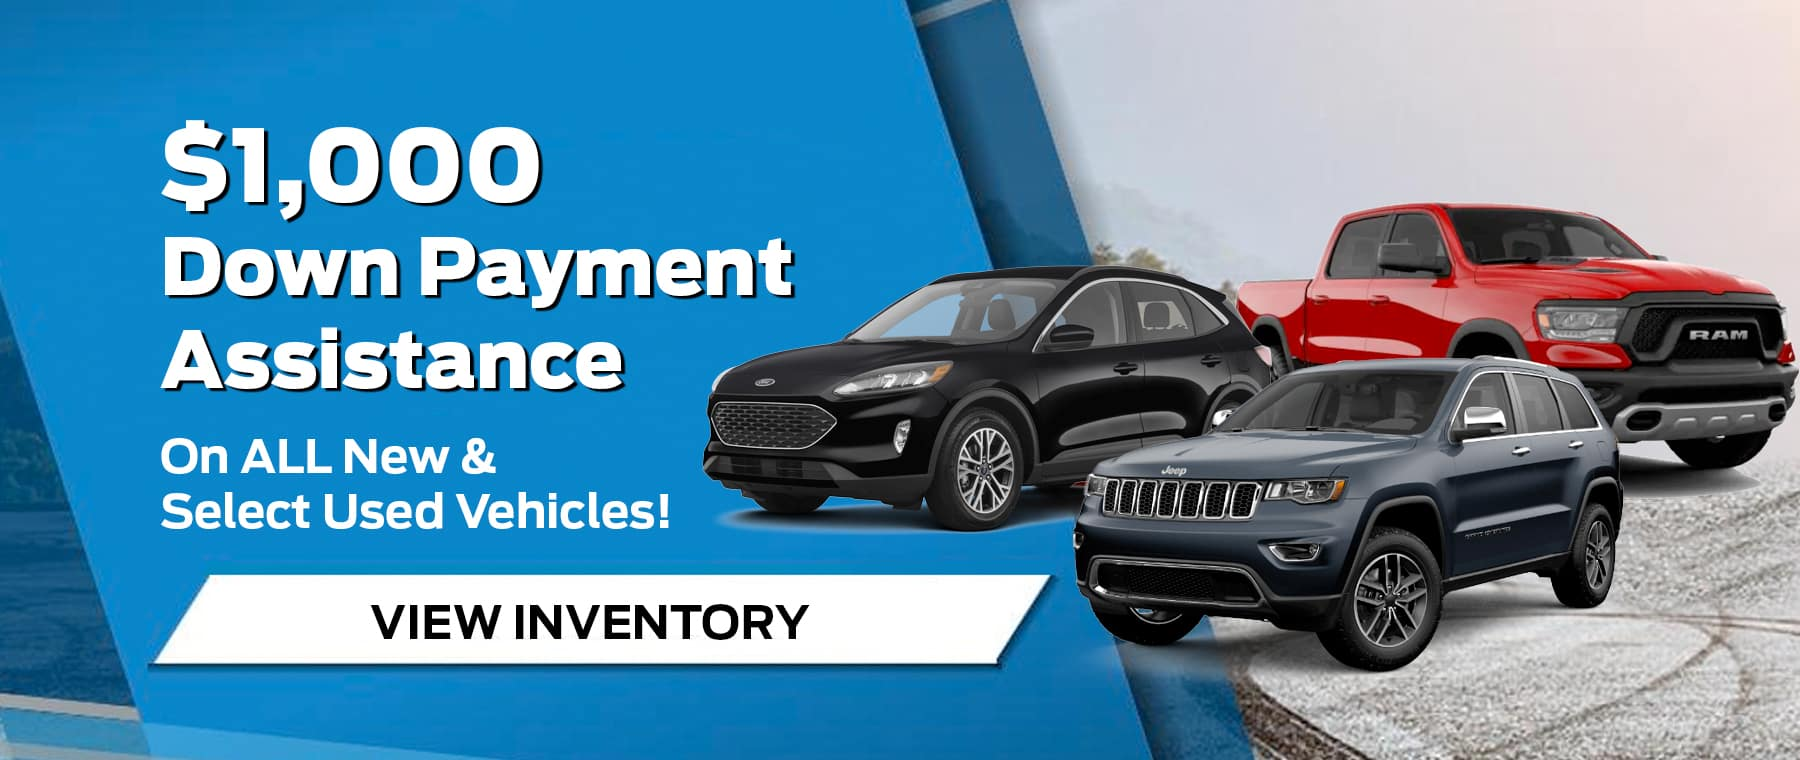 $1,000Down Payment Assistance